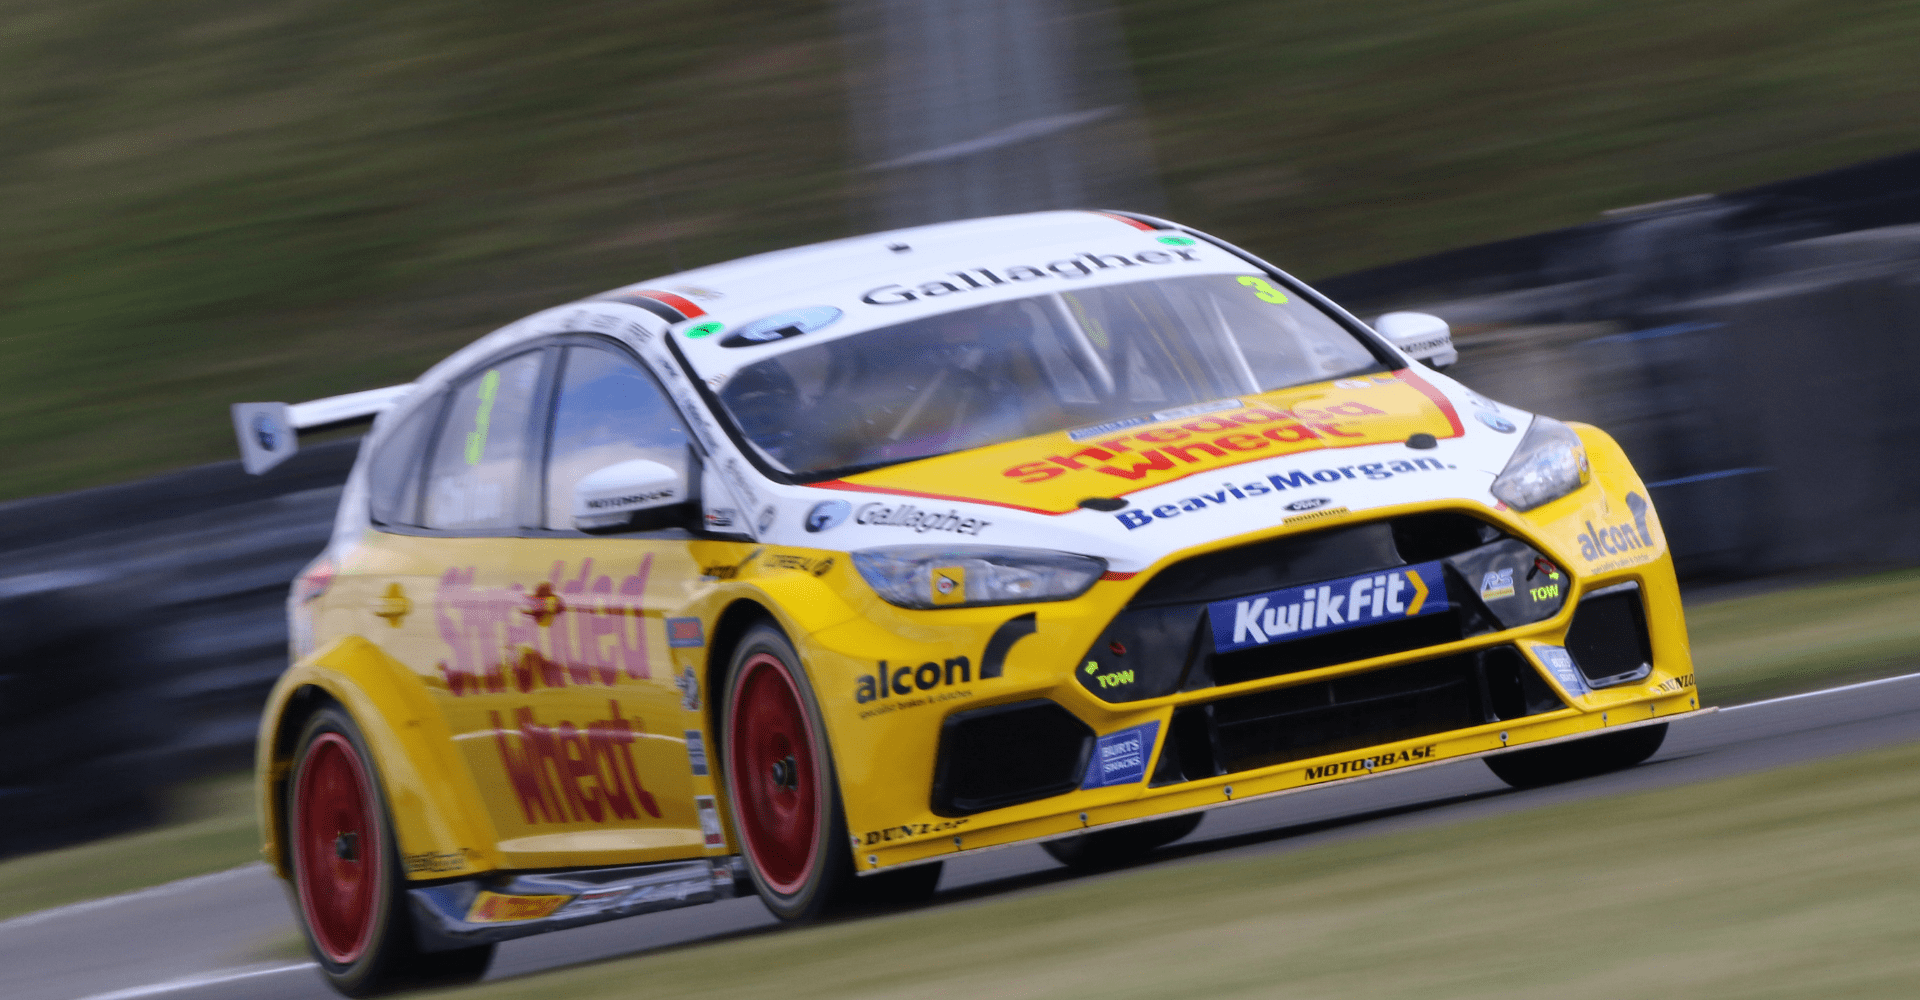 Team Shredded Wheat Racing with Gallagher full of confidence ahead of Thruxton return